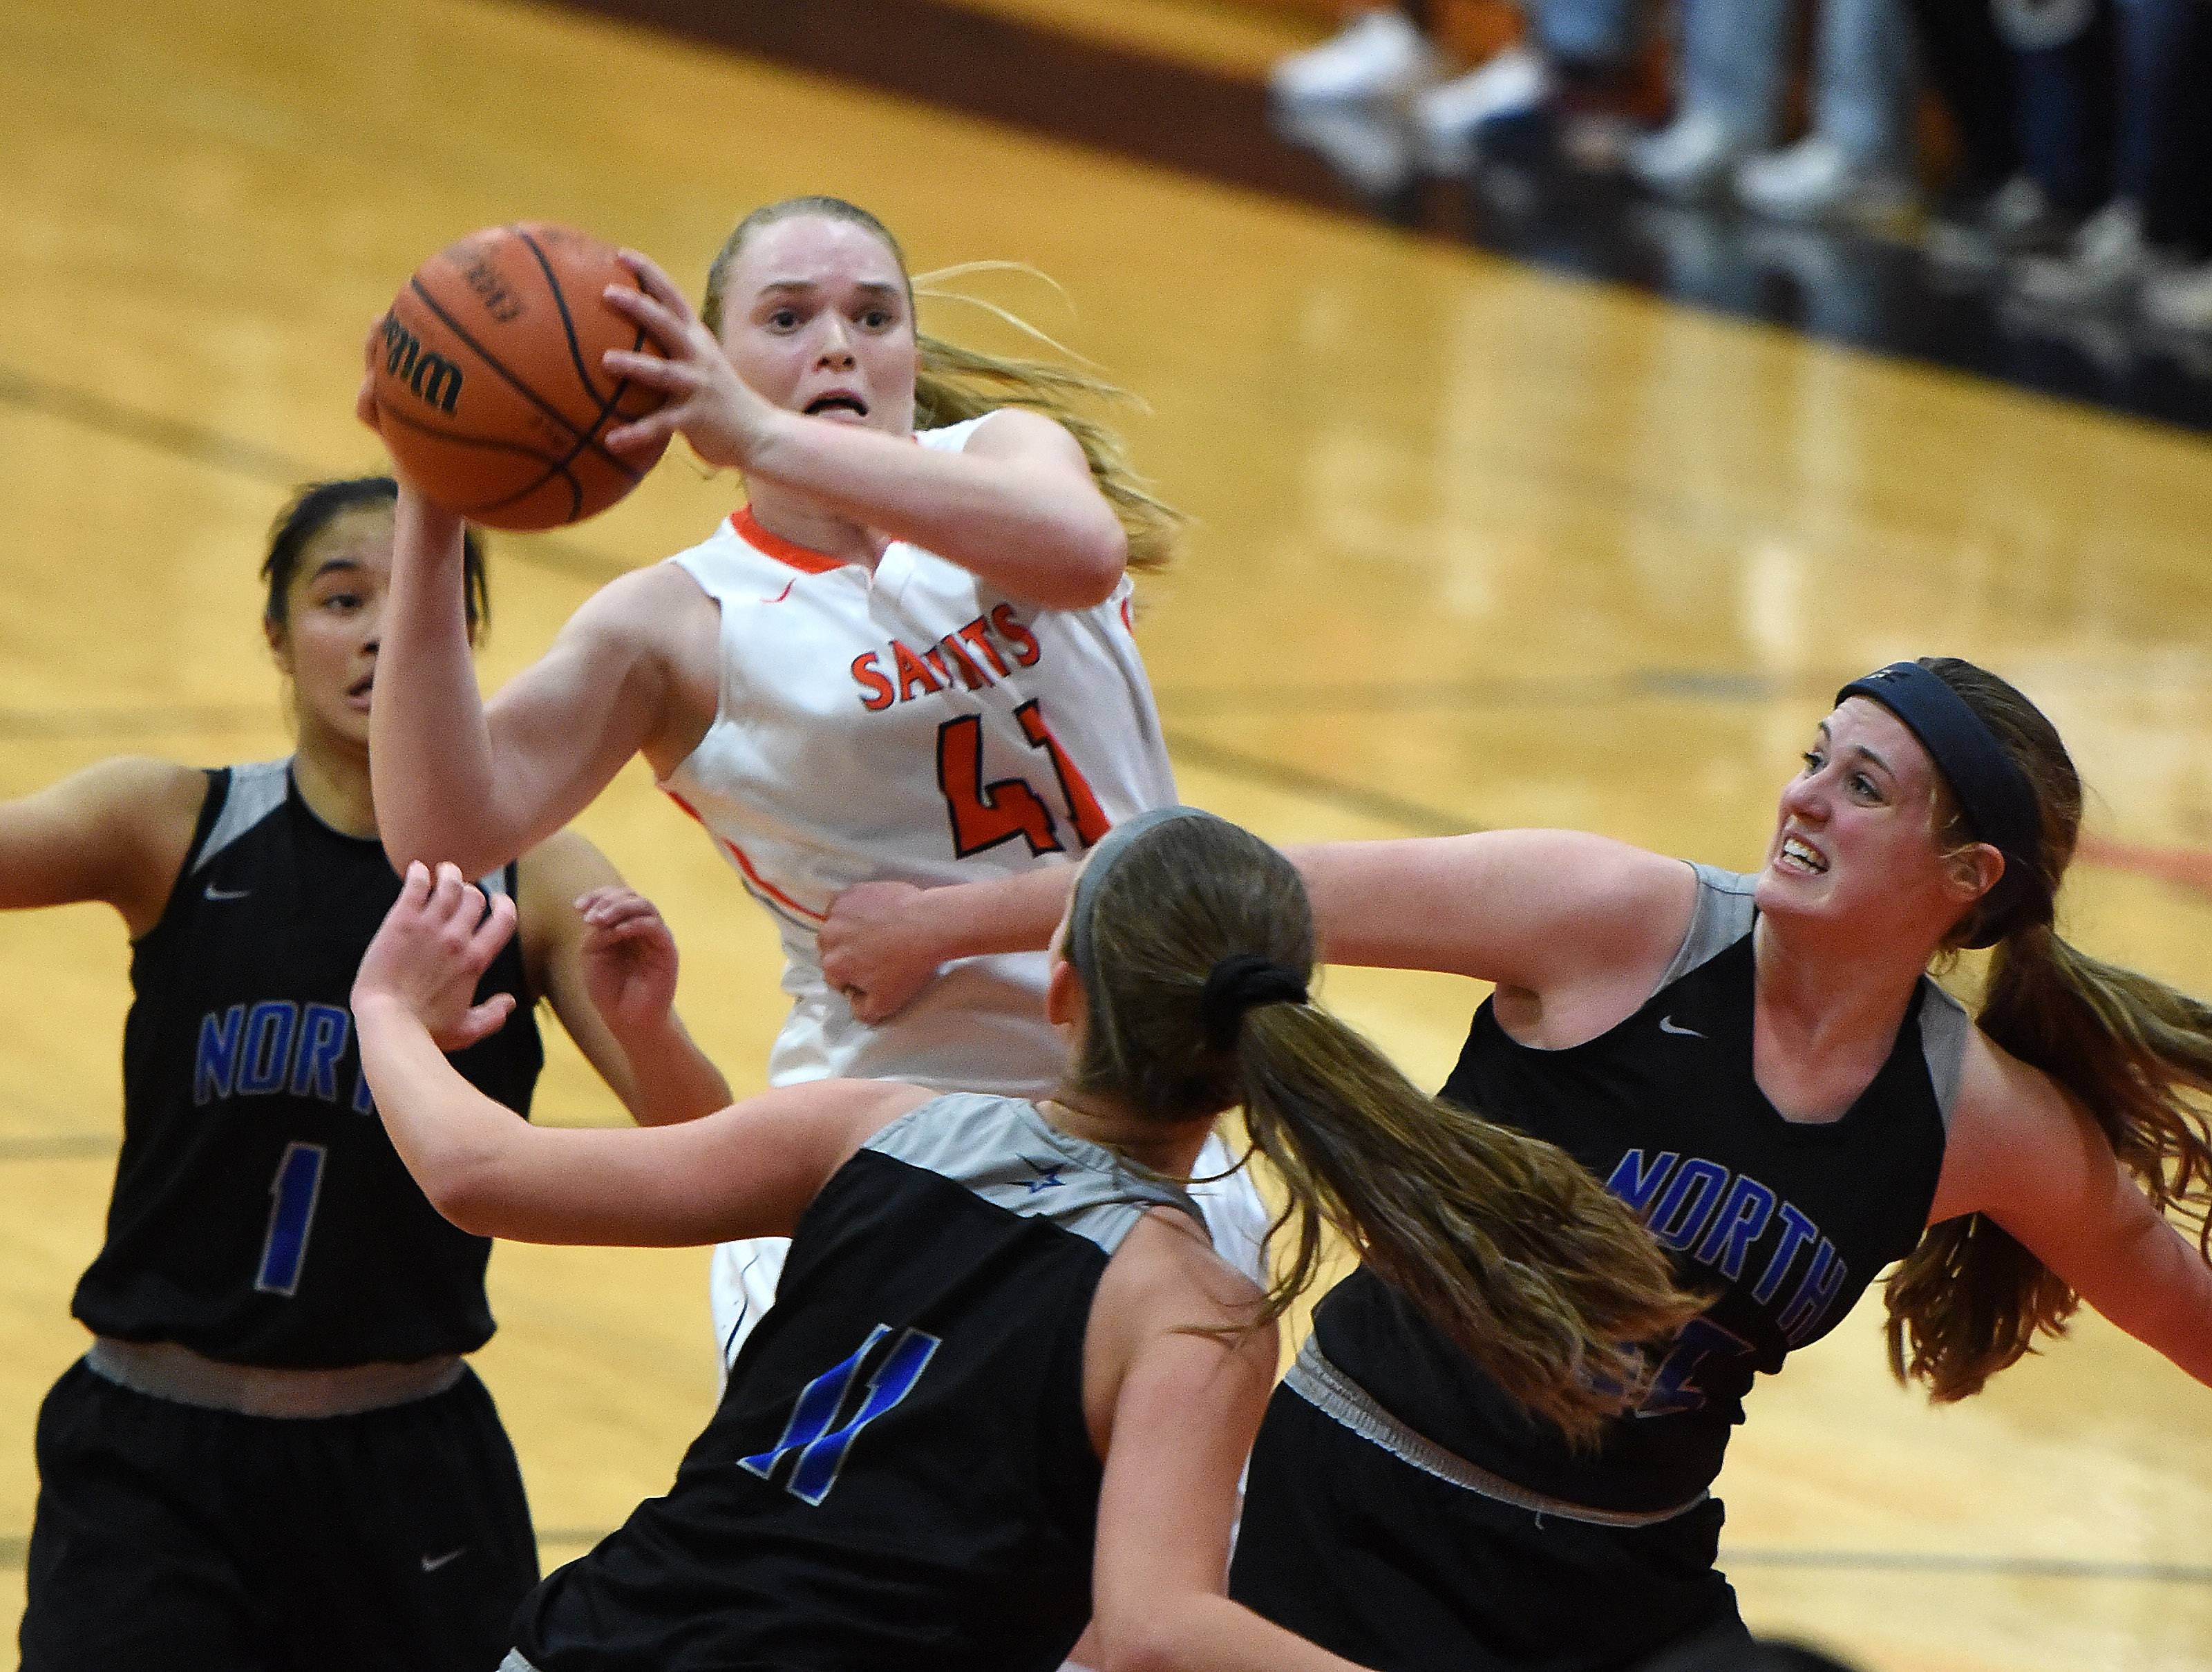 St. Charles East's Sara Rosenfeldt goes up for an off-balanced shot as she's surrounded by three St. Charles North defenders during Friday's game at East.